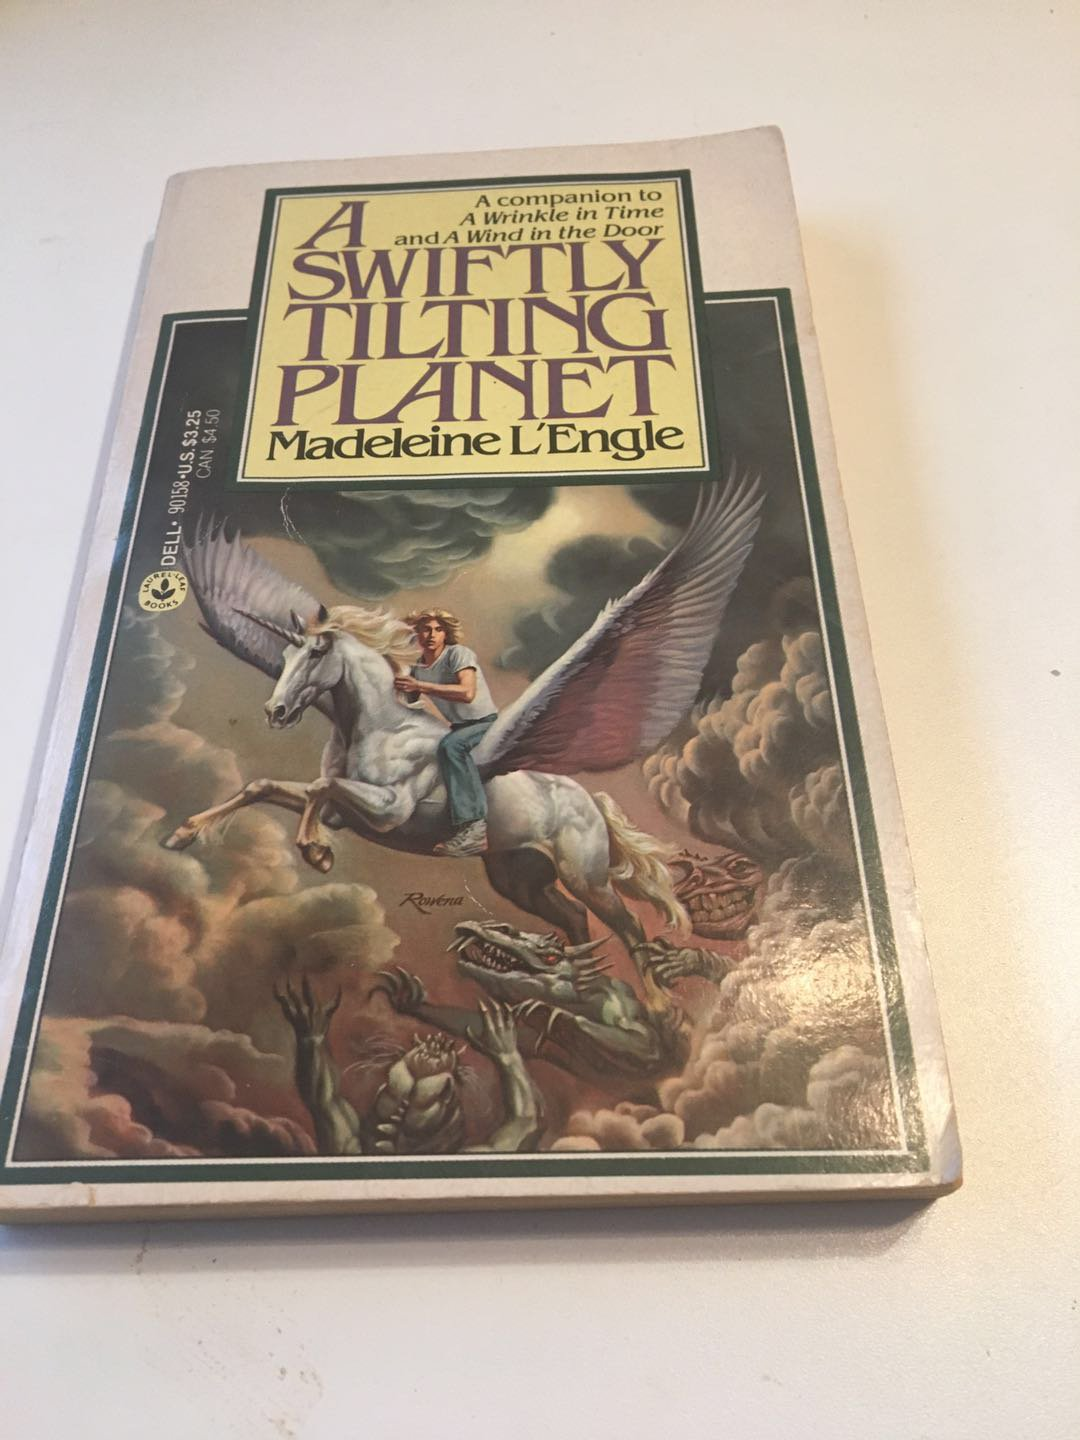 A Swiftly Tilting Planet (The Time Quartet)Jun 15, 1979 by Madeleine L'Engle